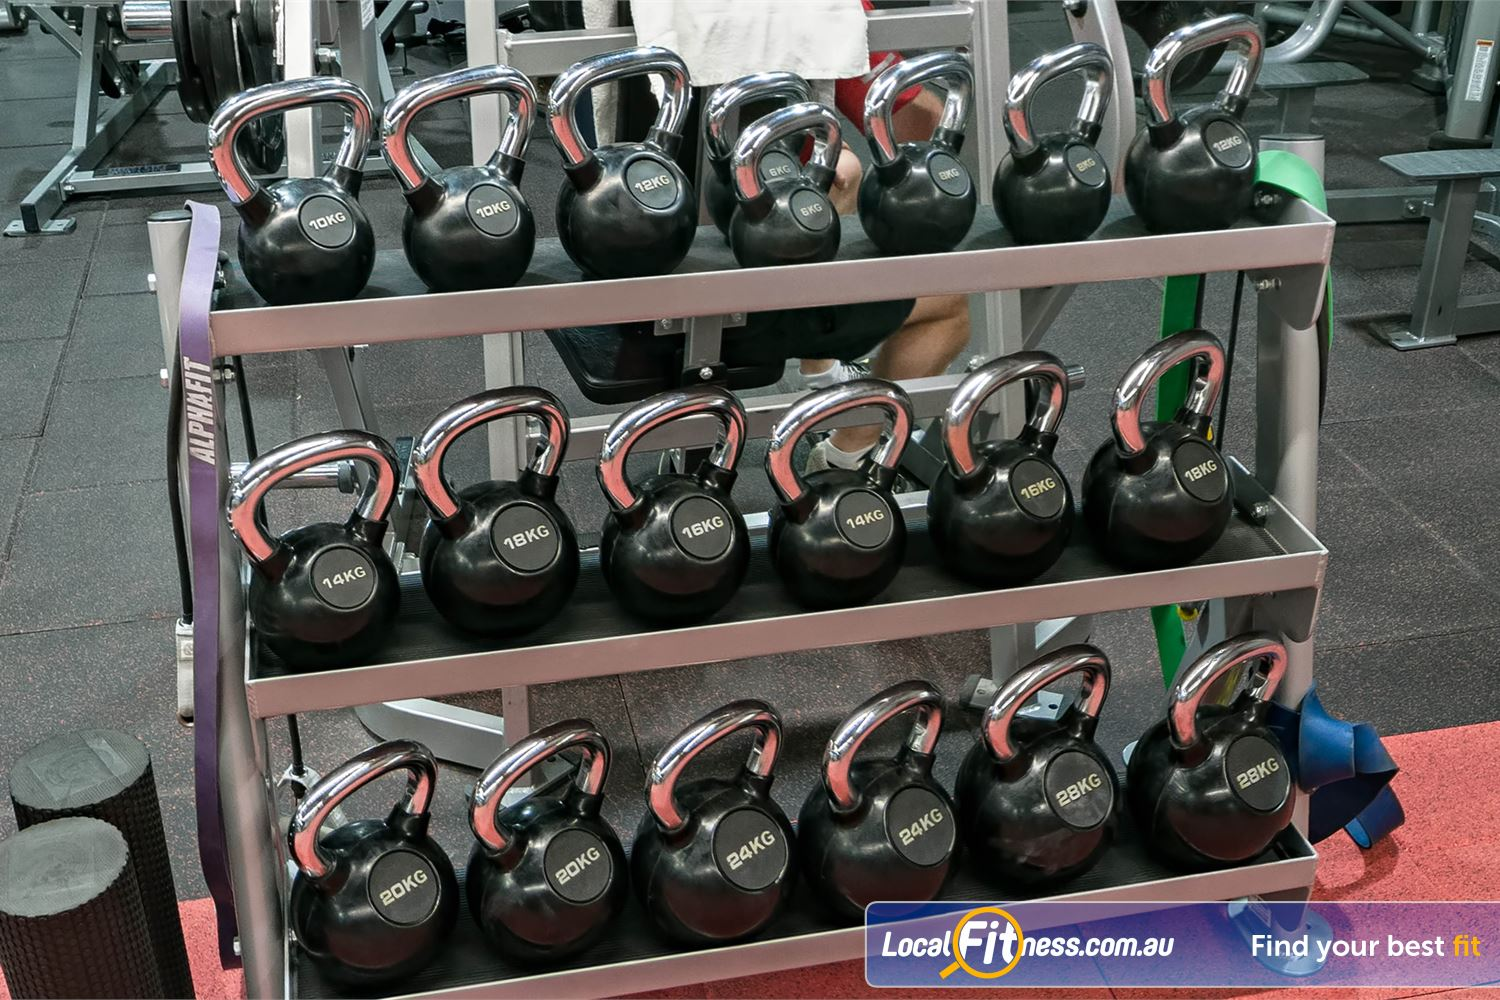 Fitness First Platinum Shelley St Near Alexandria Mc Get into kettlebell training with our full range of kettlebells.